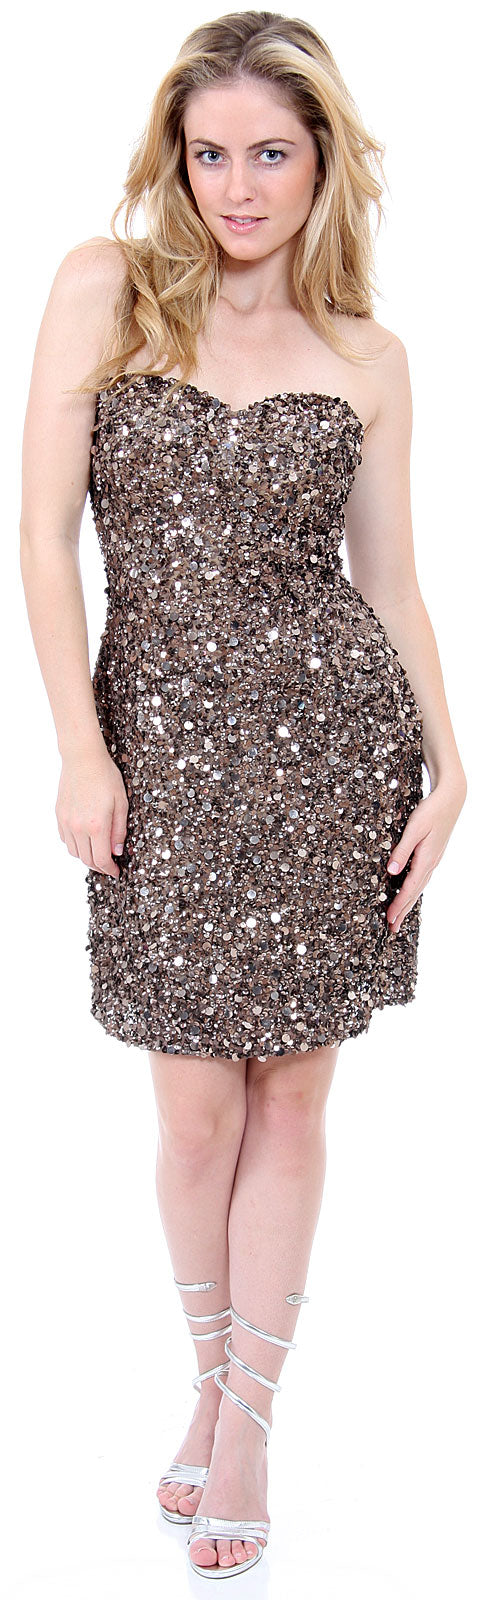 Main image of Strapless Heart-shaped Formal Sequined Dress